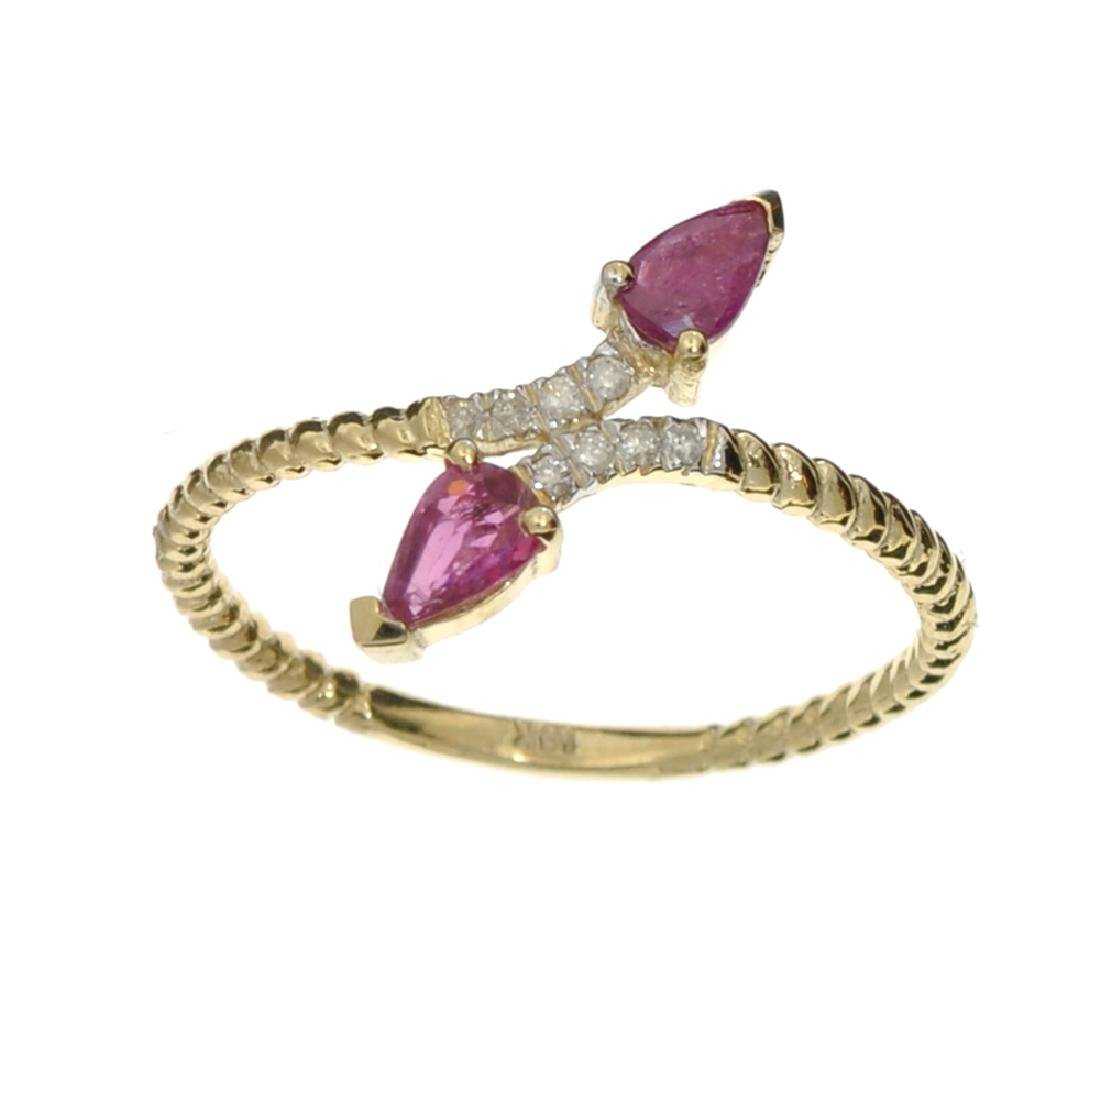 APP: 0.8k Fine Jewelry 14KT Gold, 0.53CT Ruby And